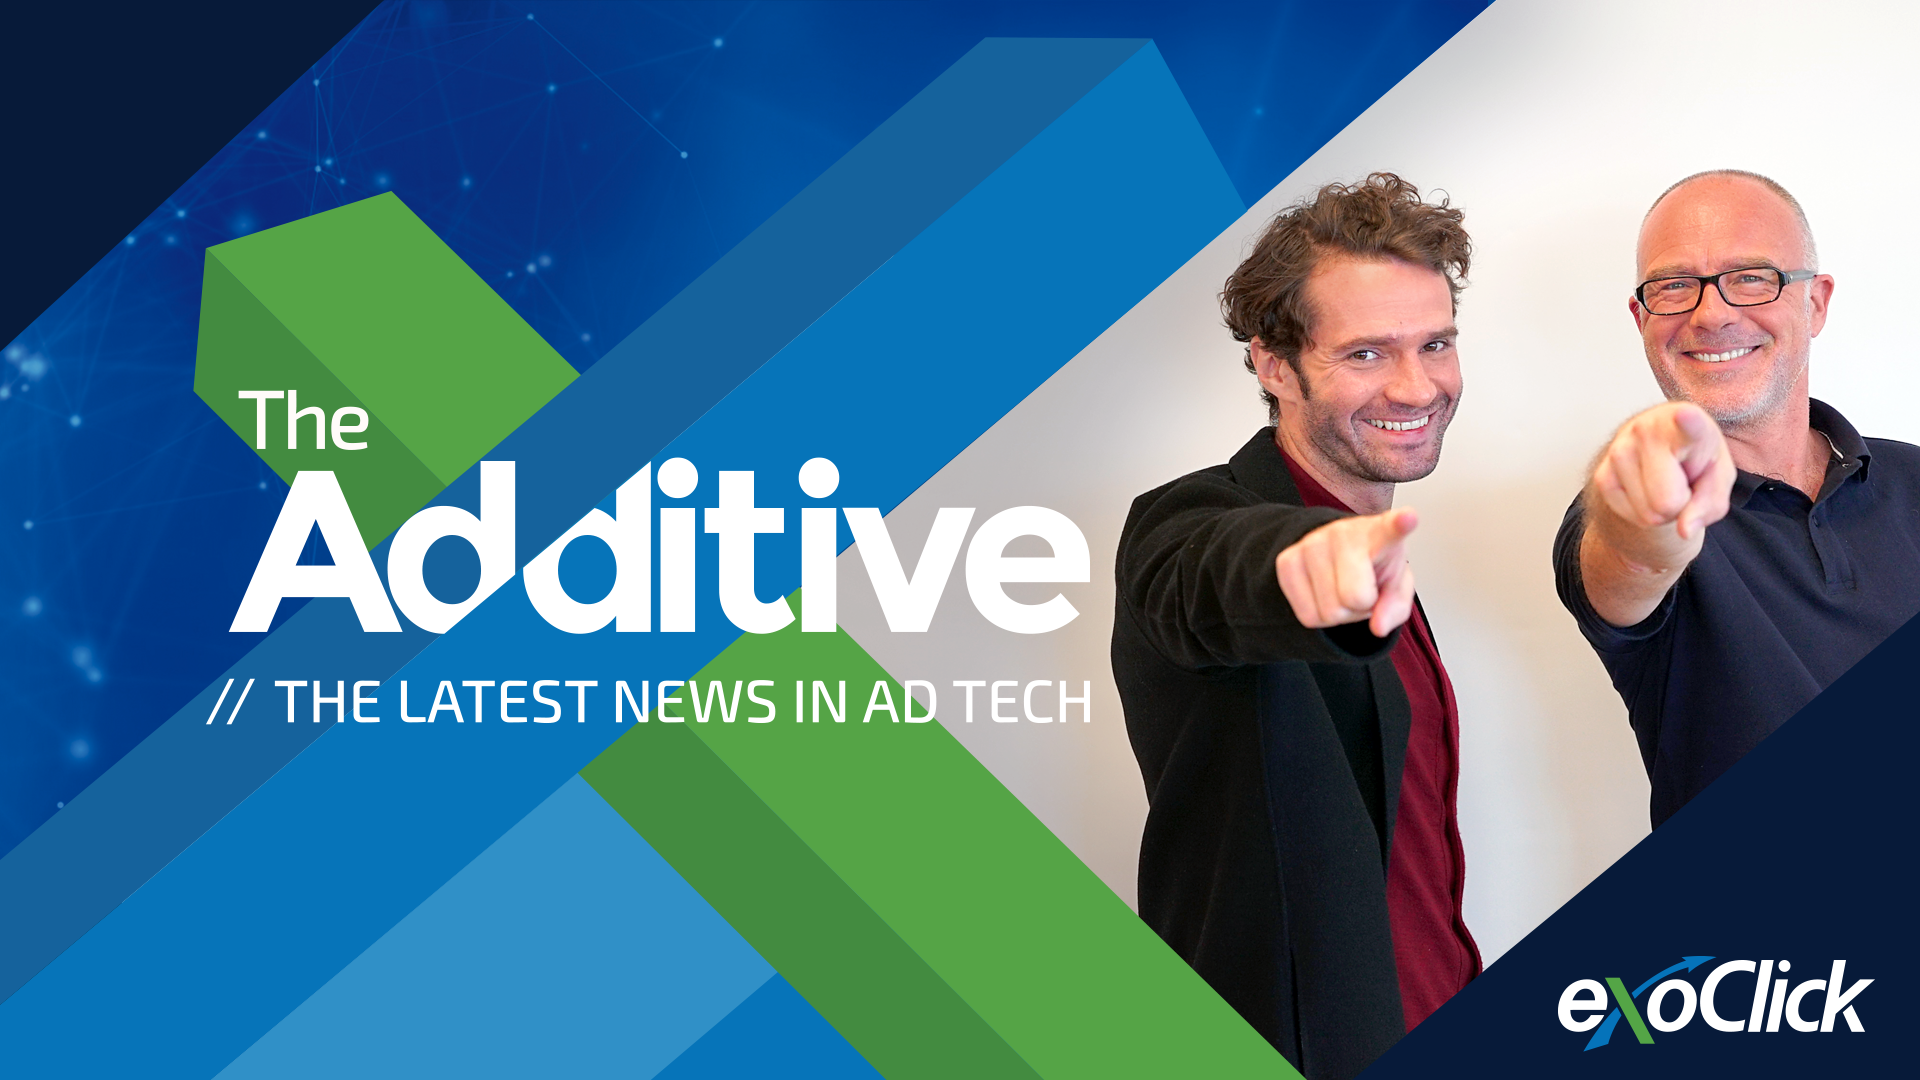 The Additive November 2019